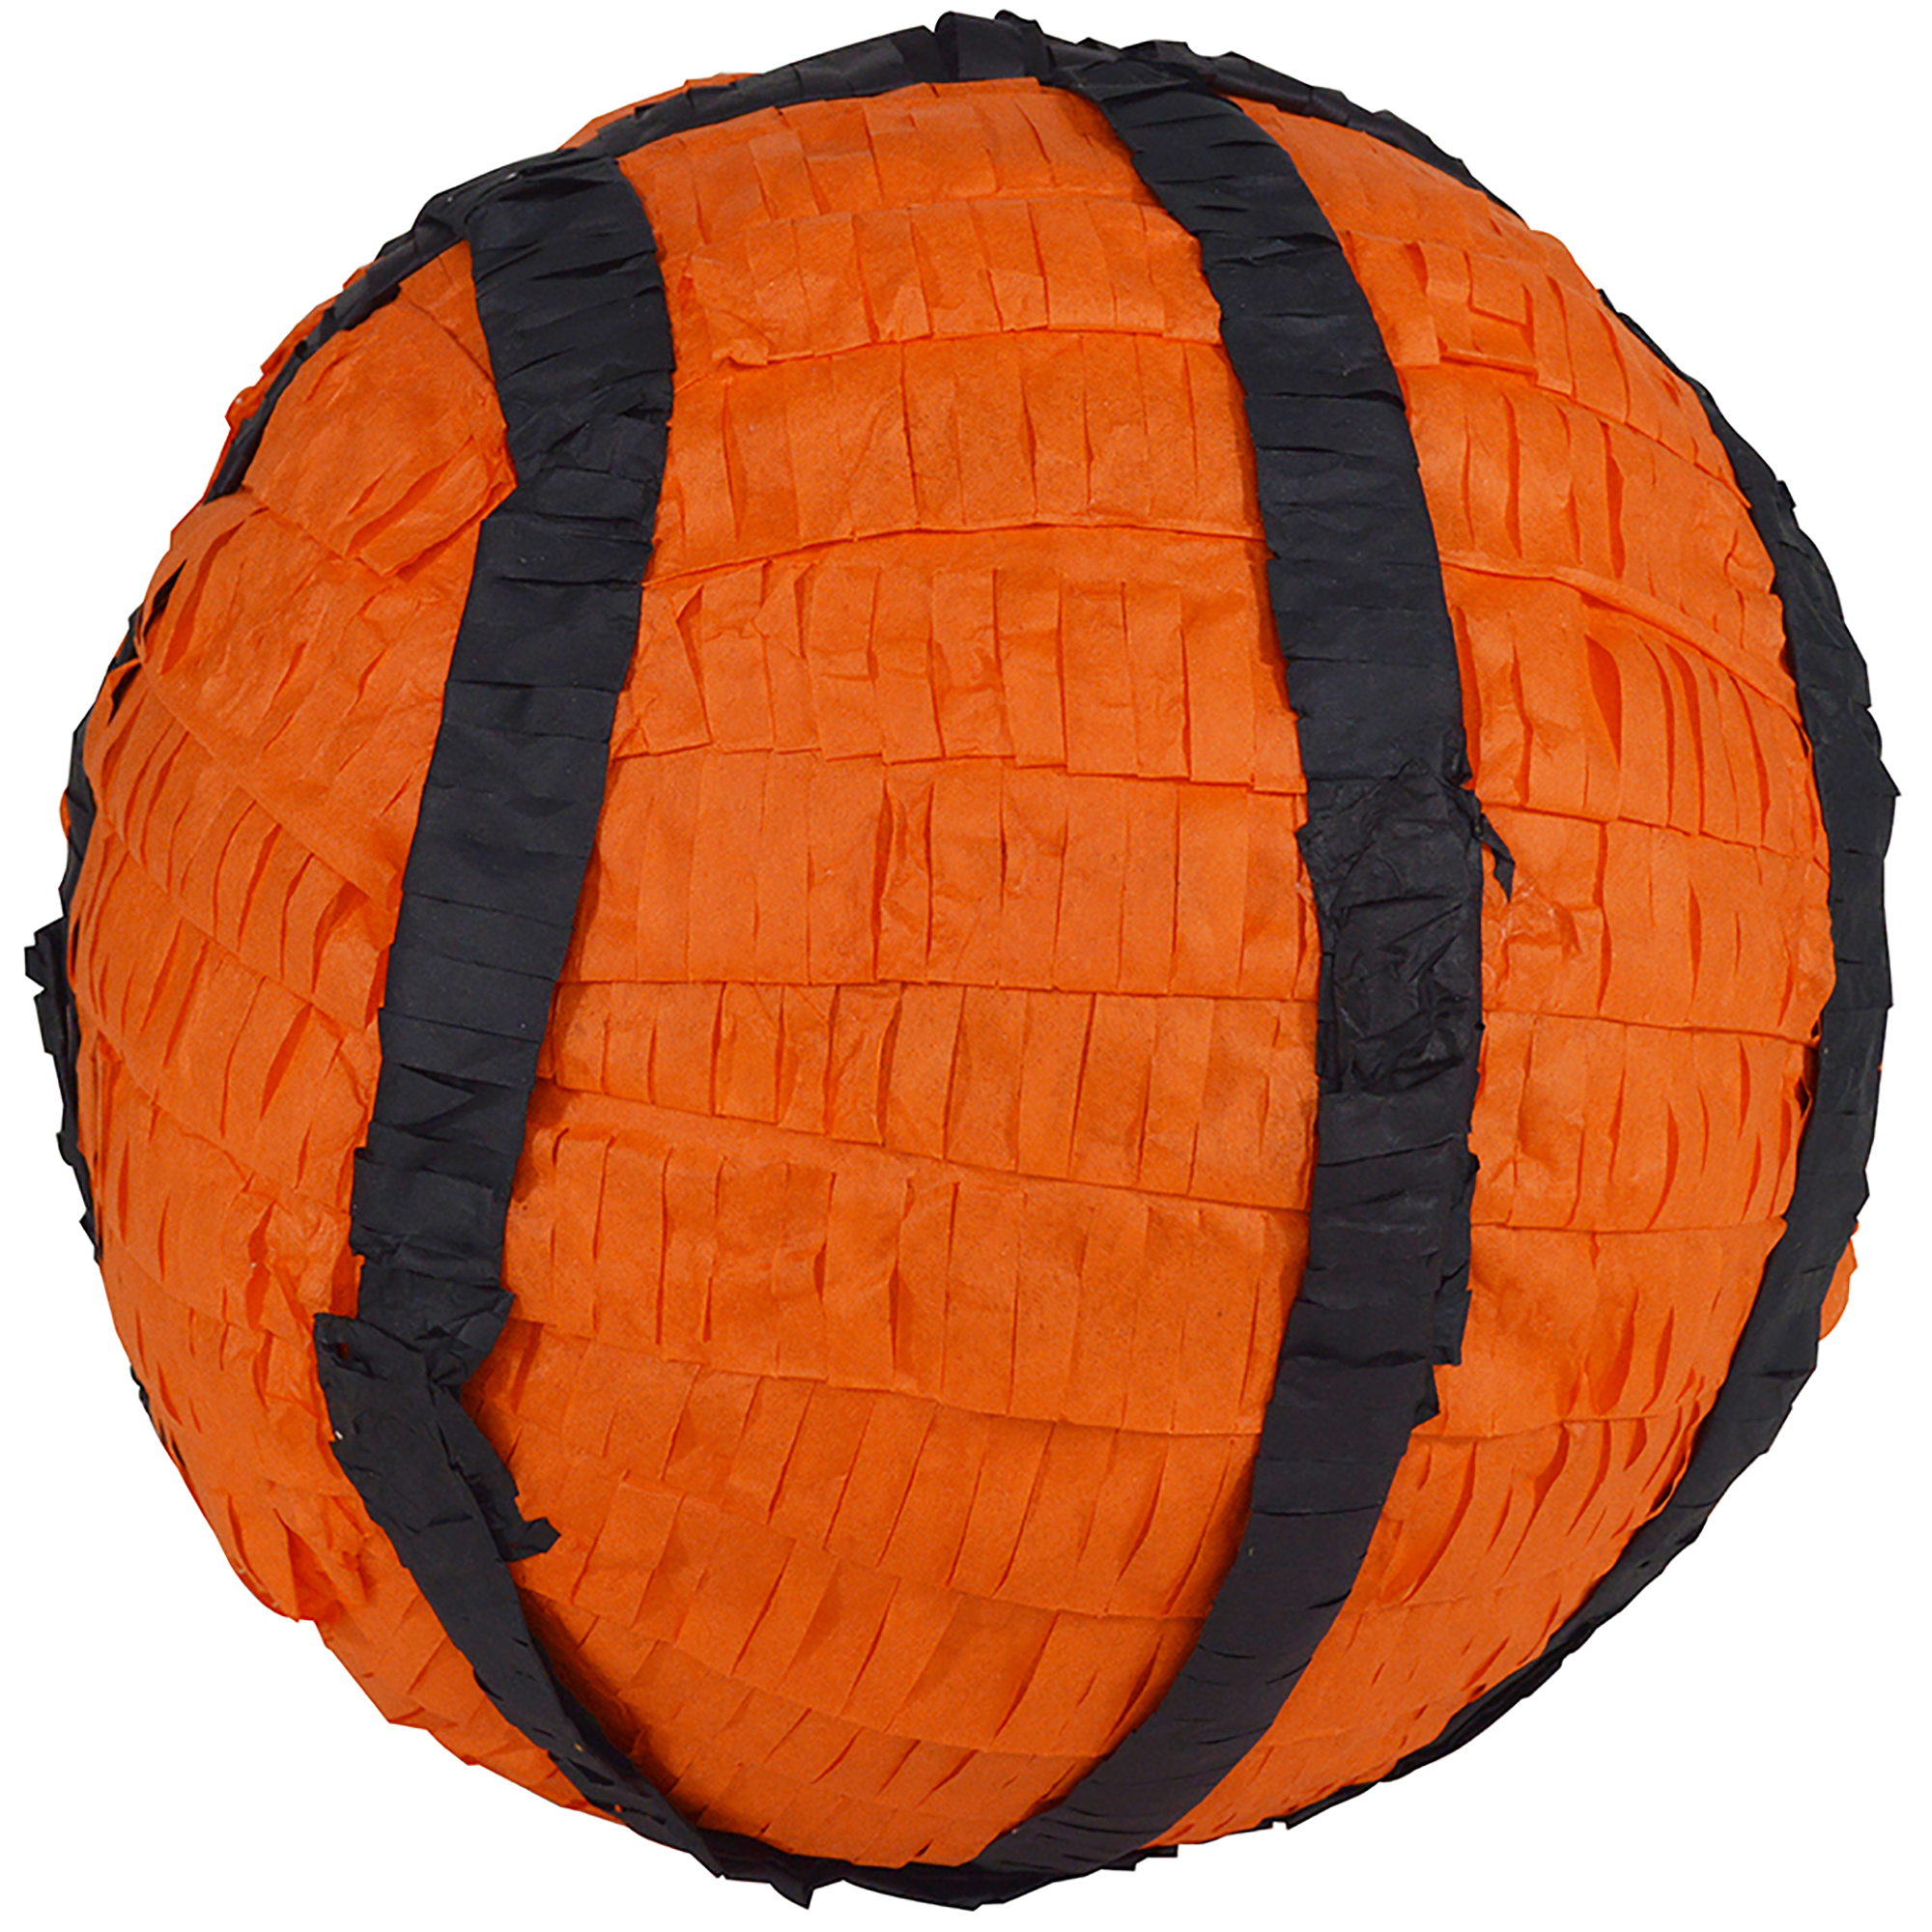 BASKETBALL Pinata - Party Supplies